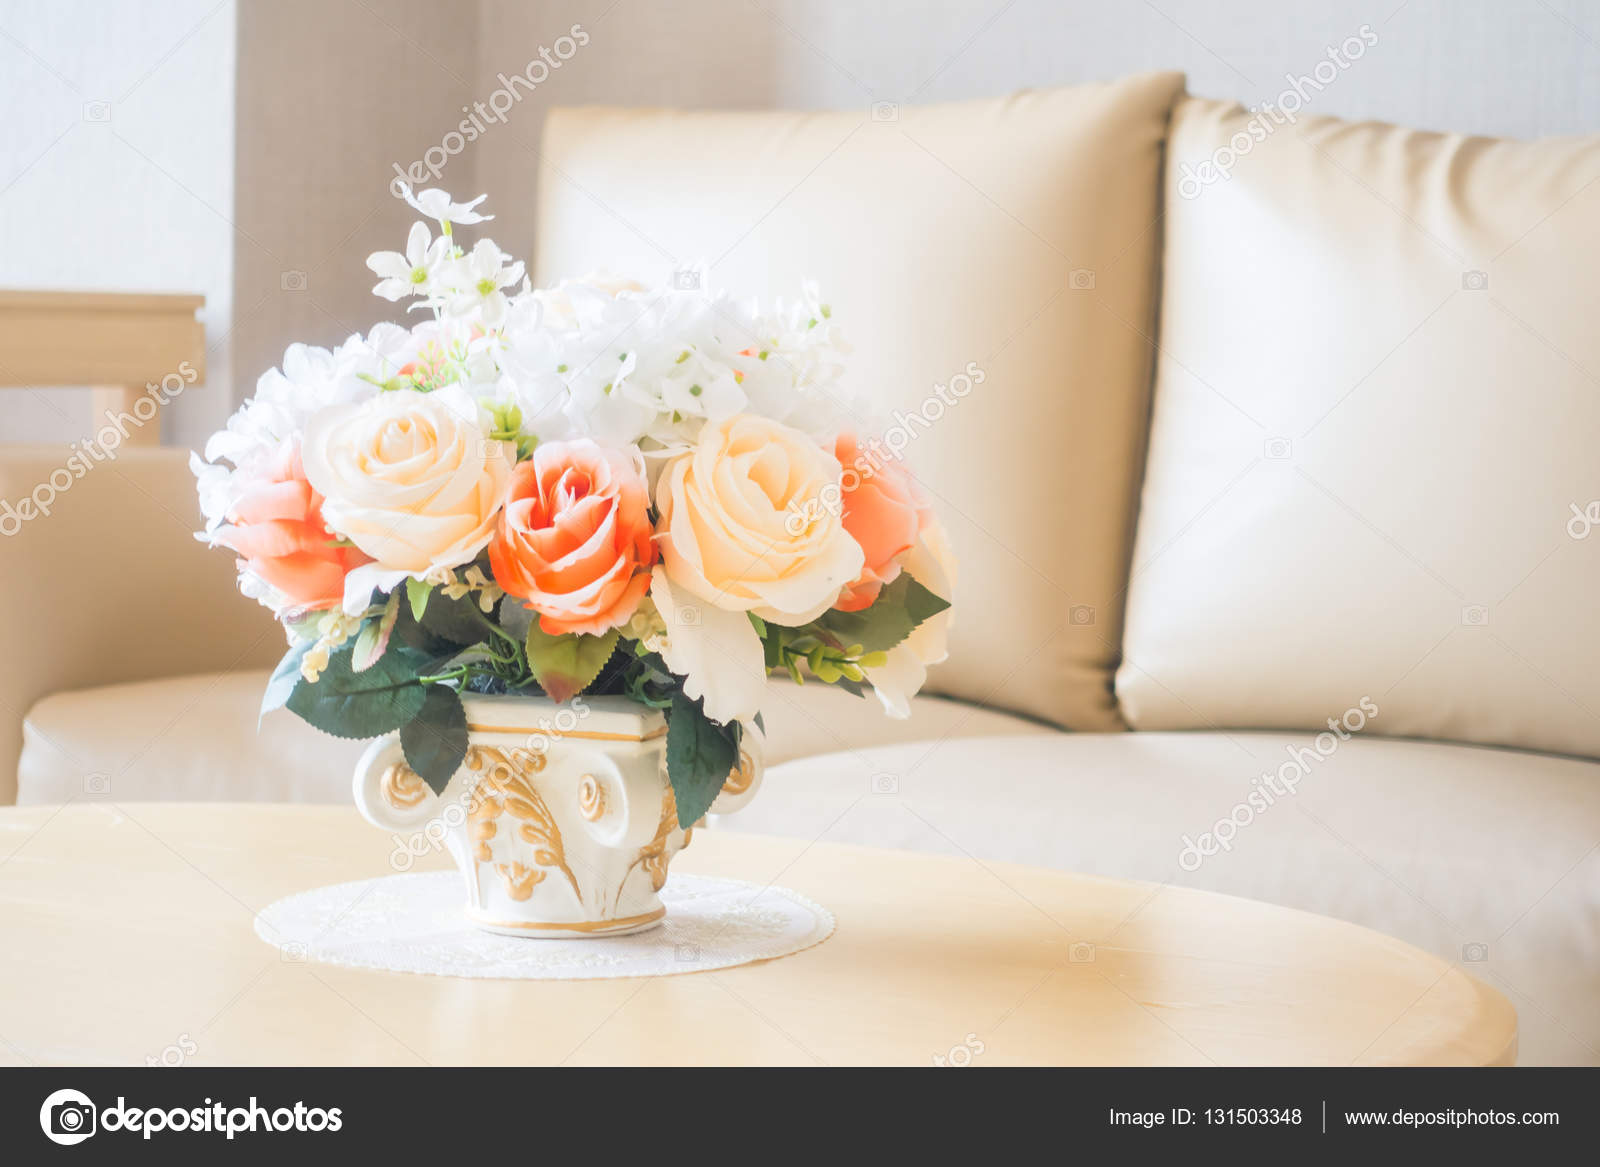 living room flower vases side tables for with drawers vase on table decoration in area interior stock beautiful photo by mrsiraphol